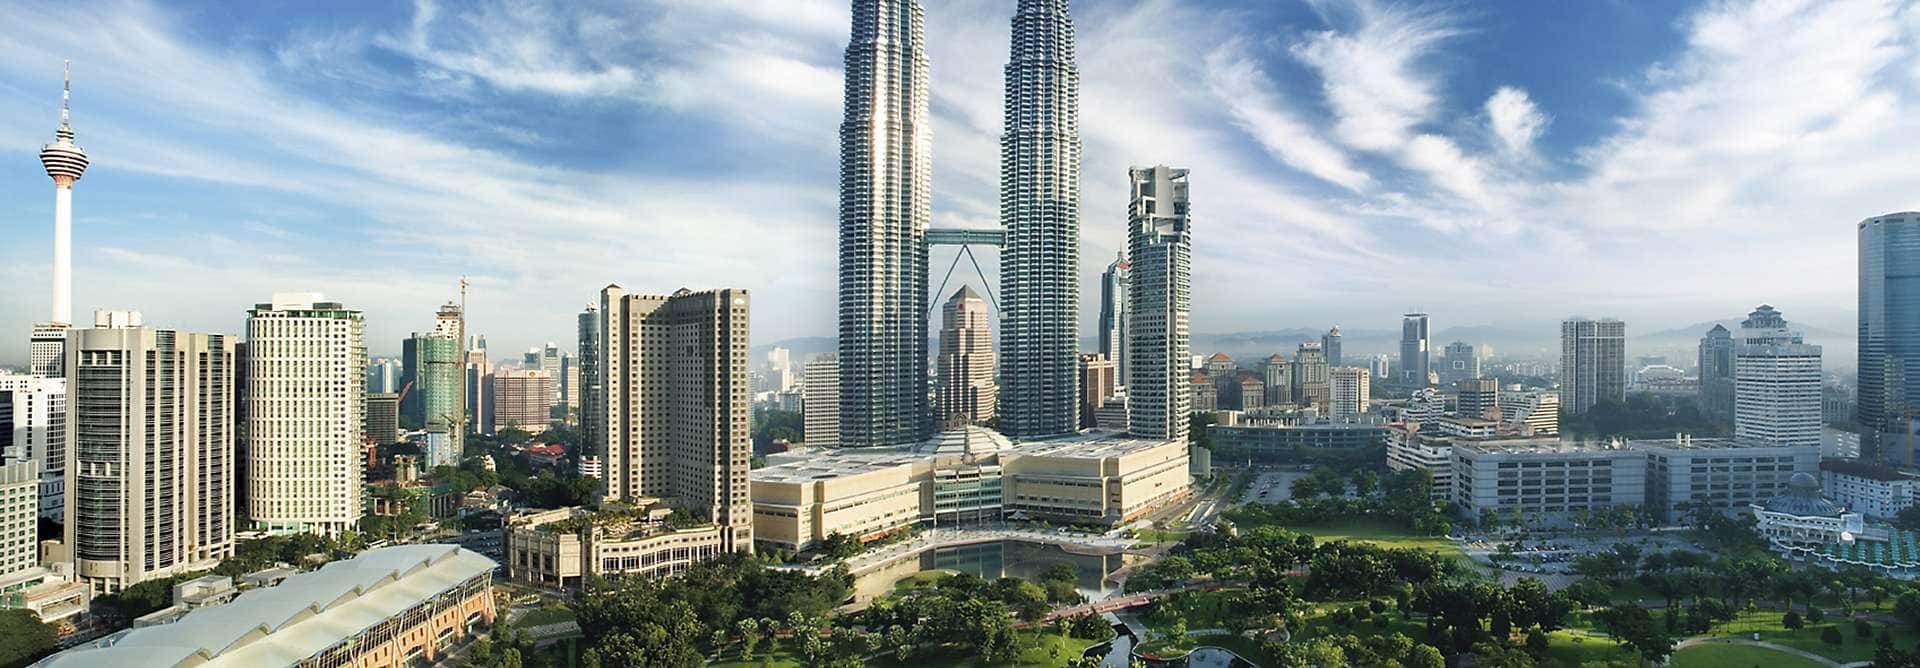 Mandarin Oriental, Kuala Lumpur offers impressive views, fabulous facilities and outstanding comfort in the heart of Malaysia's vibrant capital.